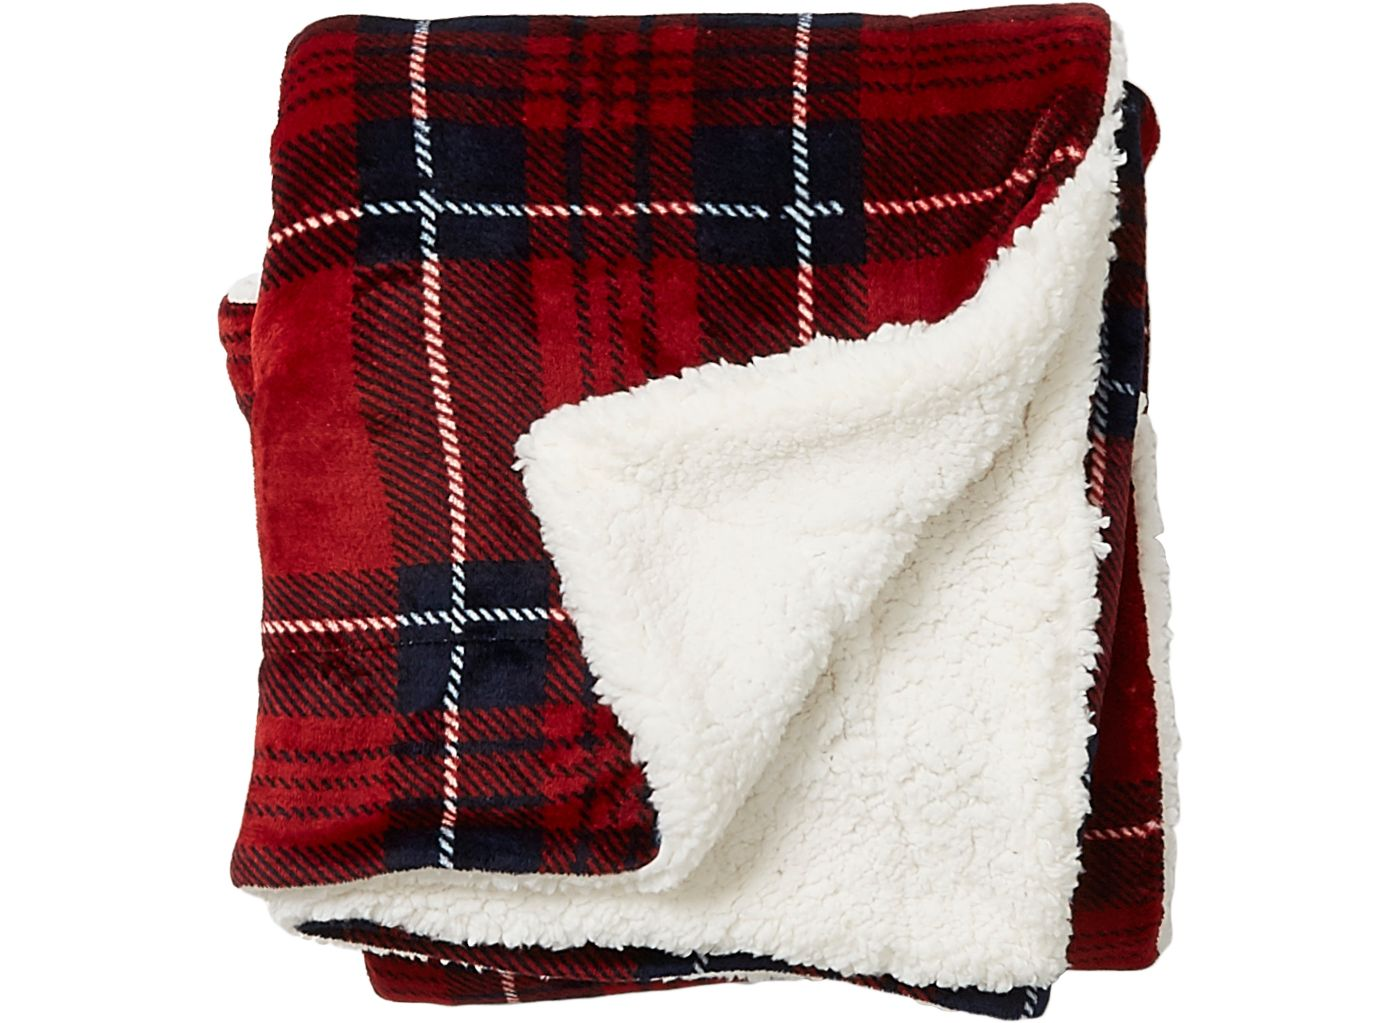 Field & Stream Cozy Plaid Sherpa Blanket